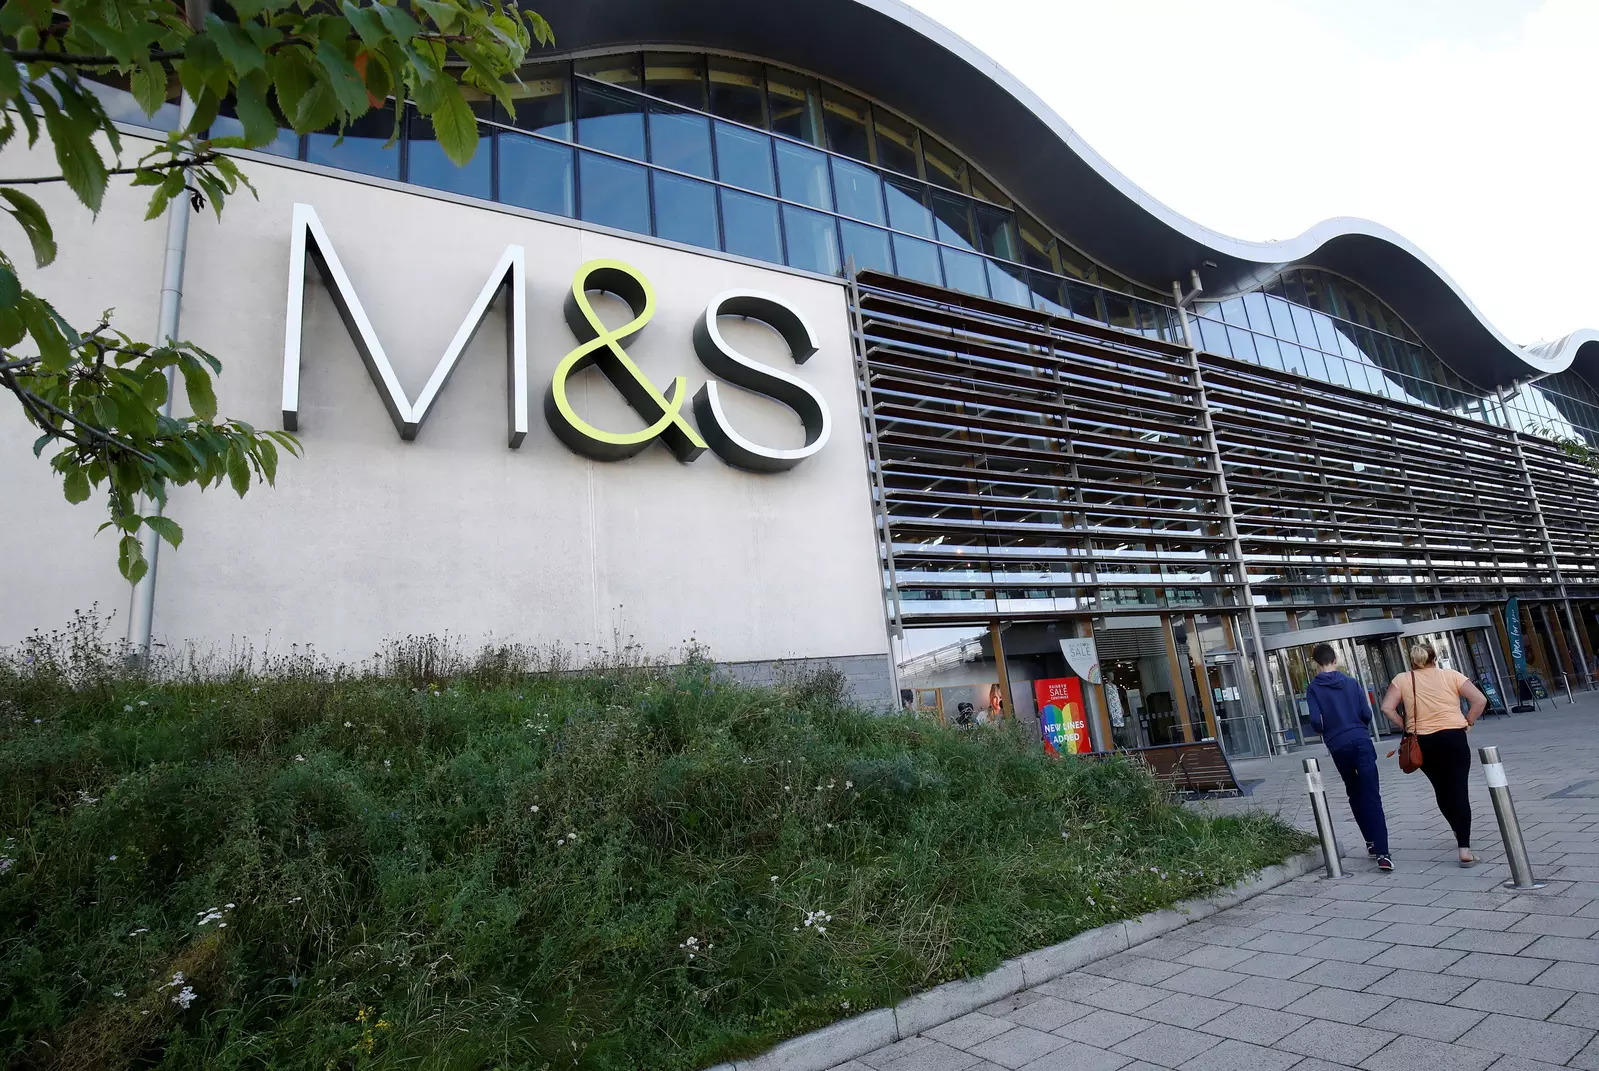 Britain's M&S aims to be fully net zero on emissions by 2040